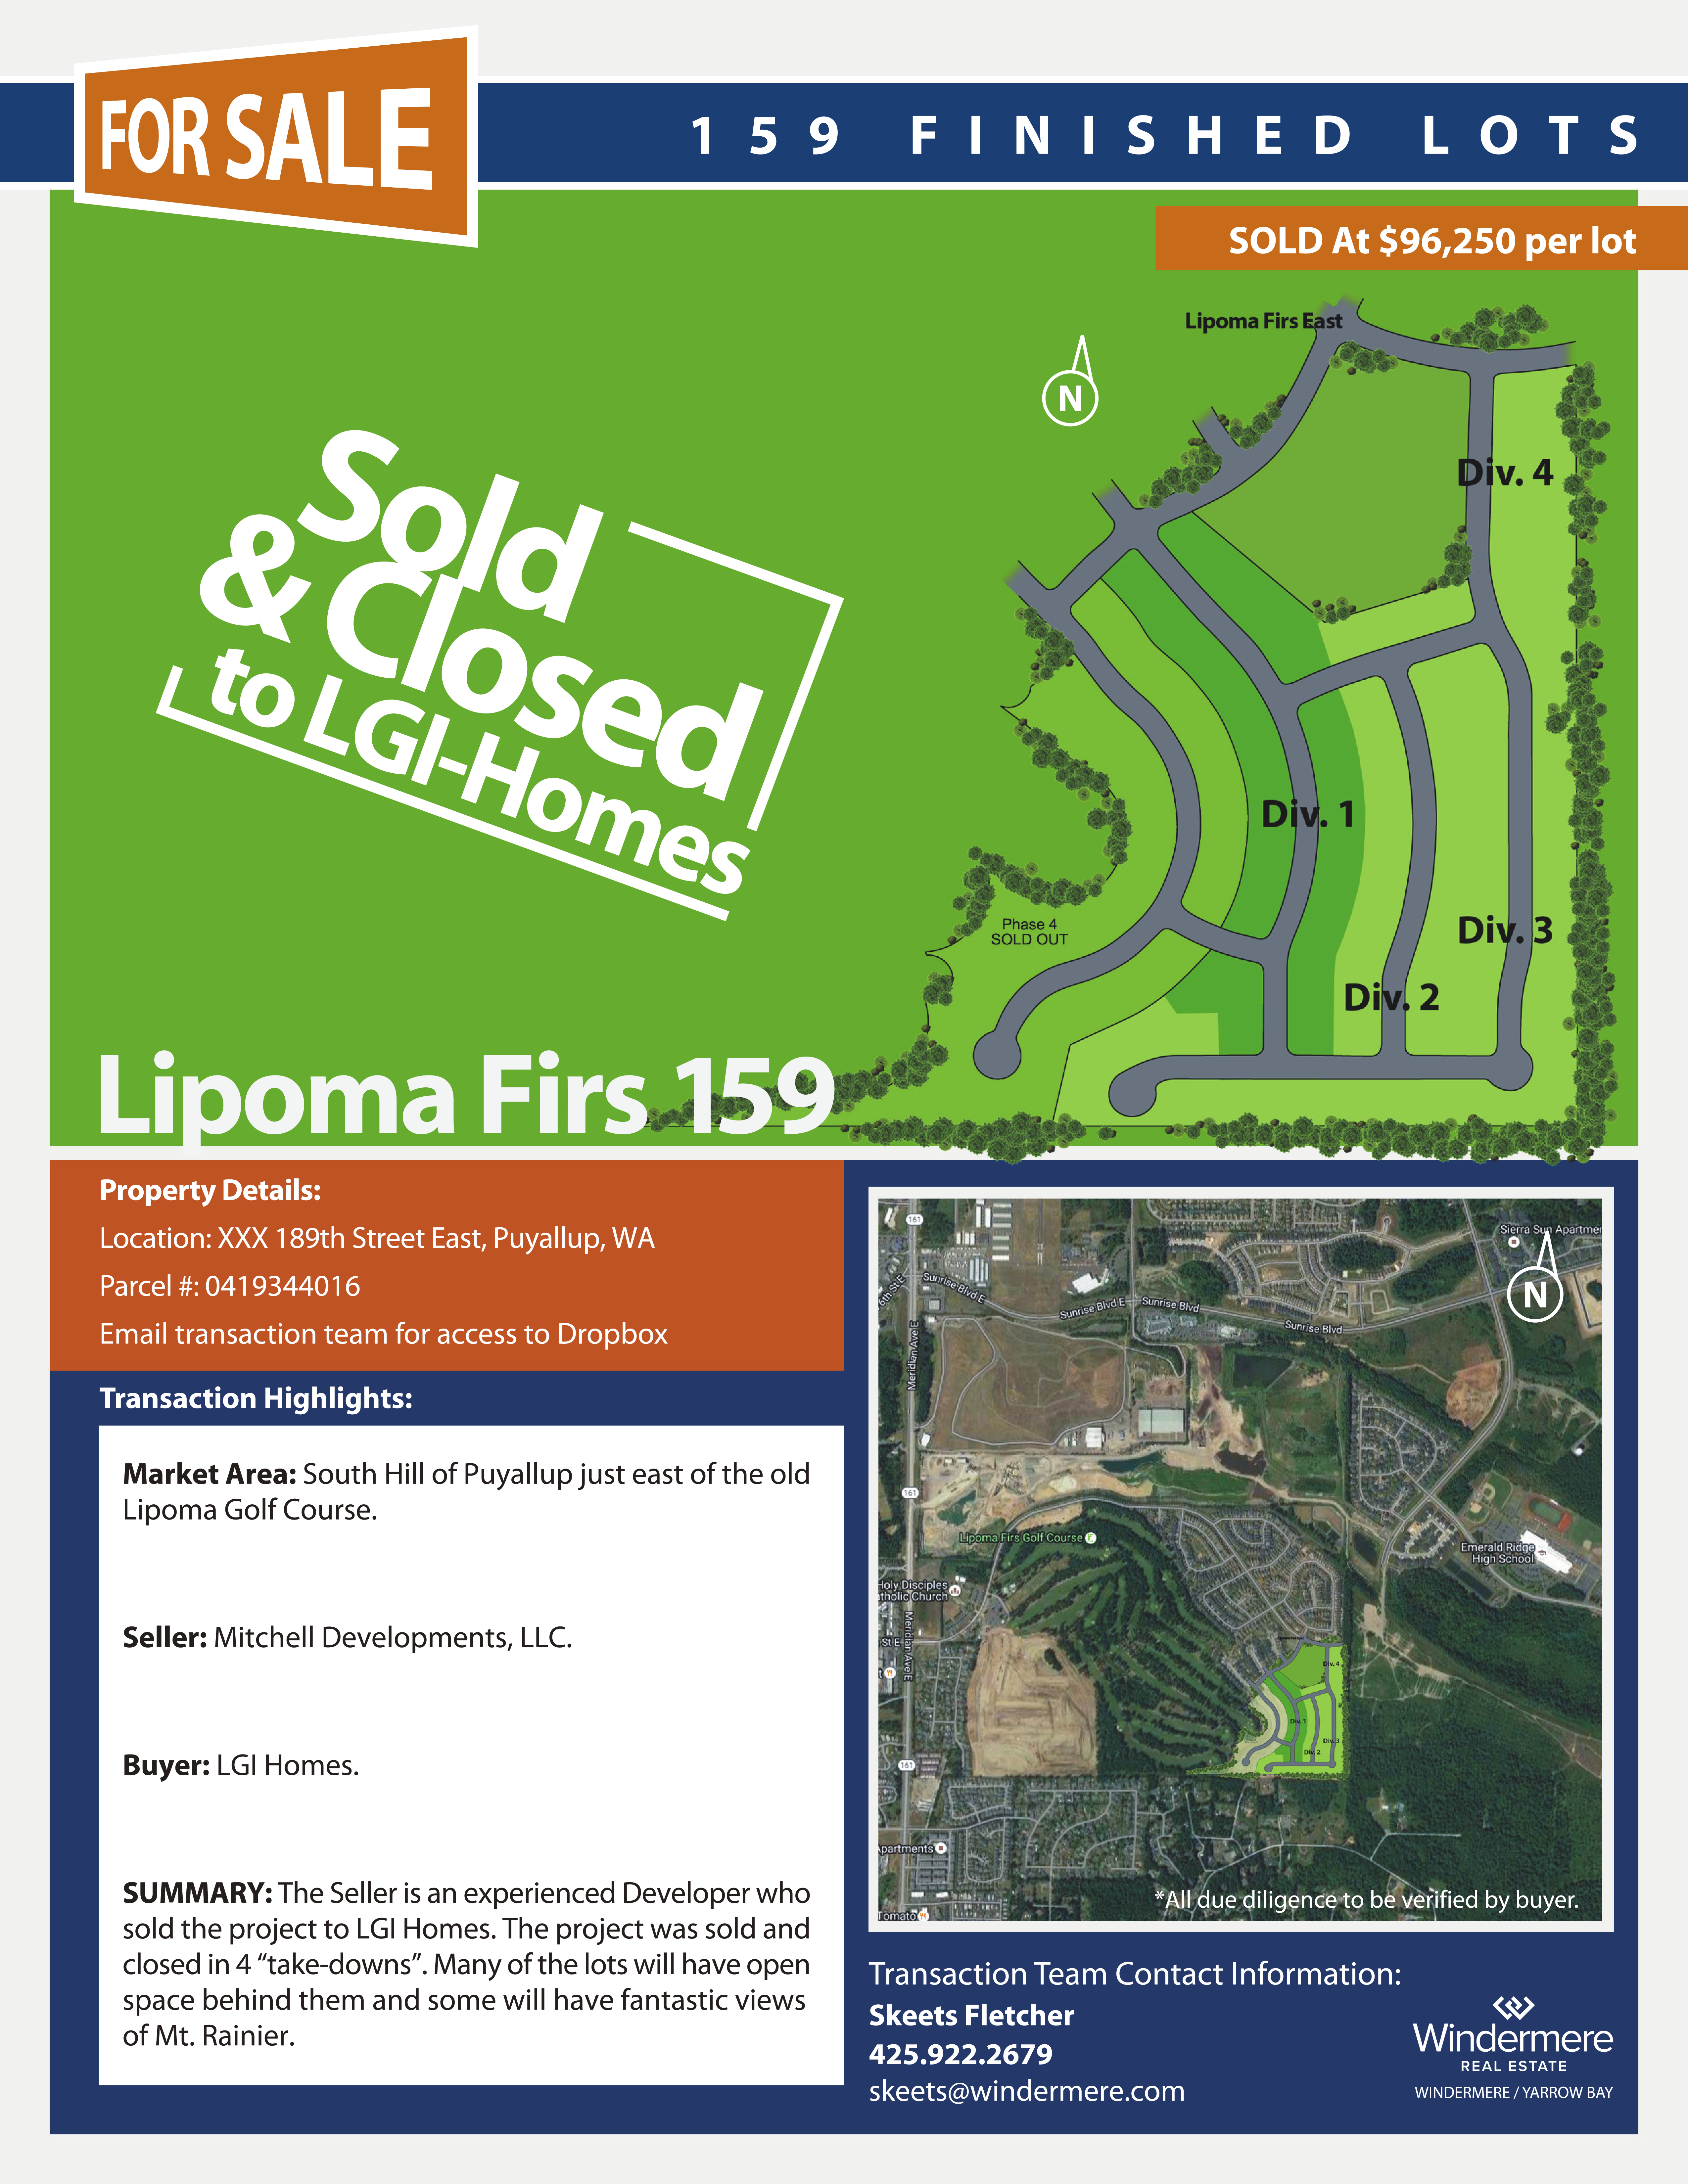 11.13.18 Lipoma Firs 159 Flyer - Sold_001